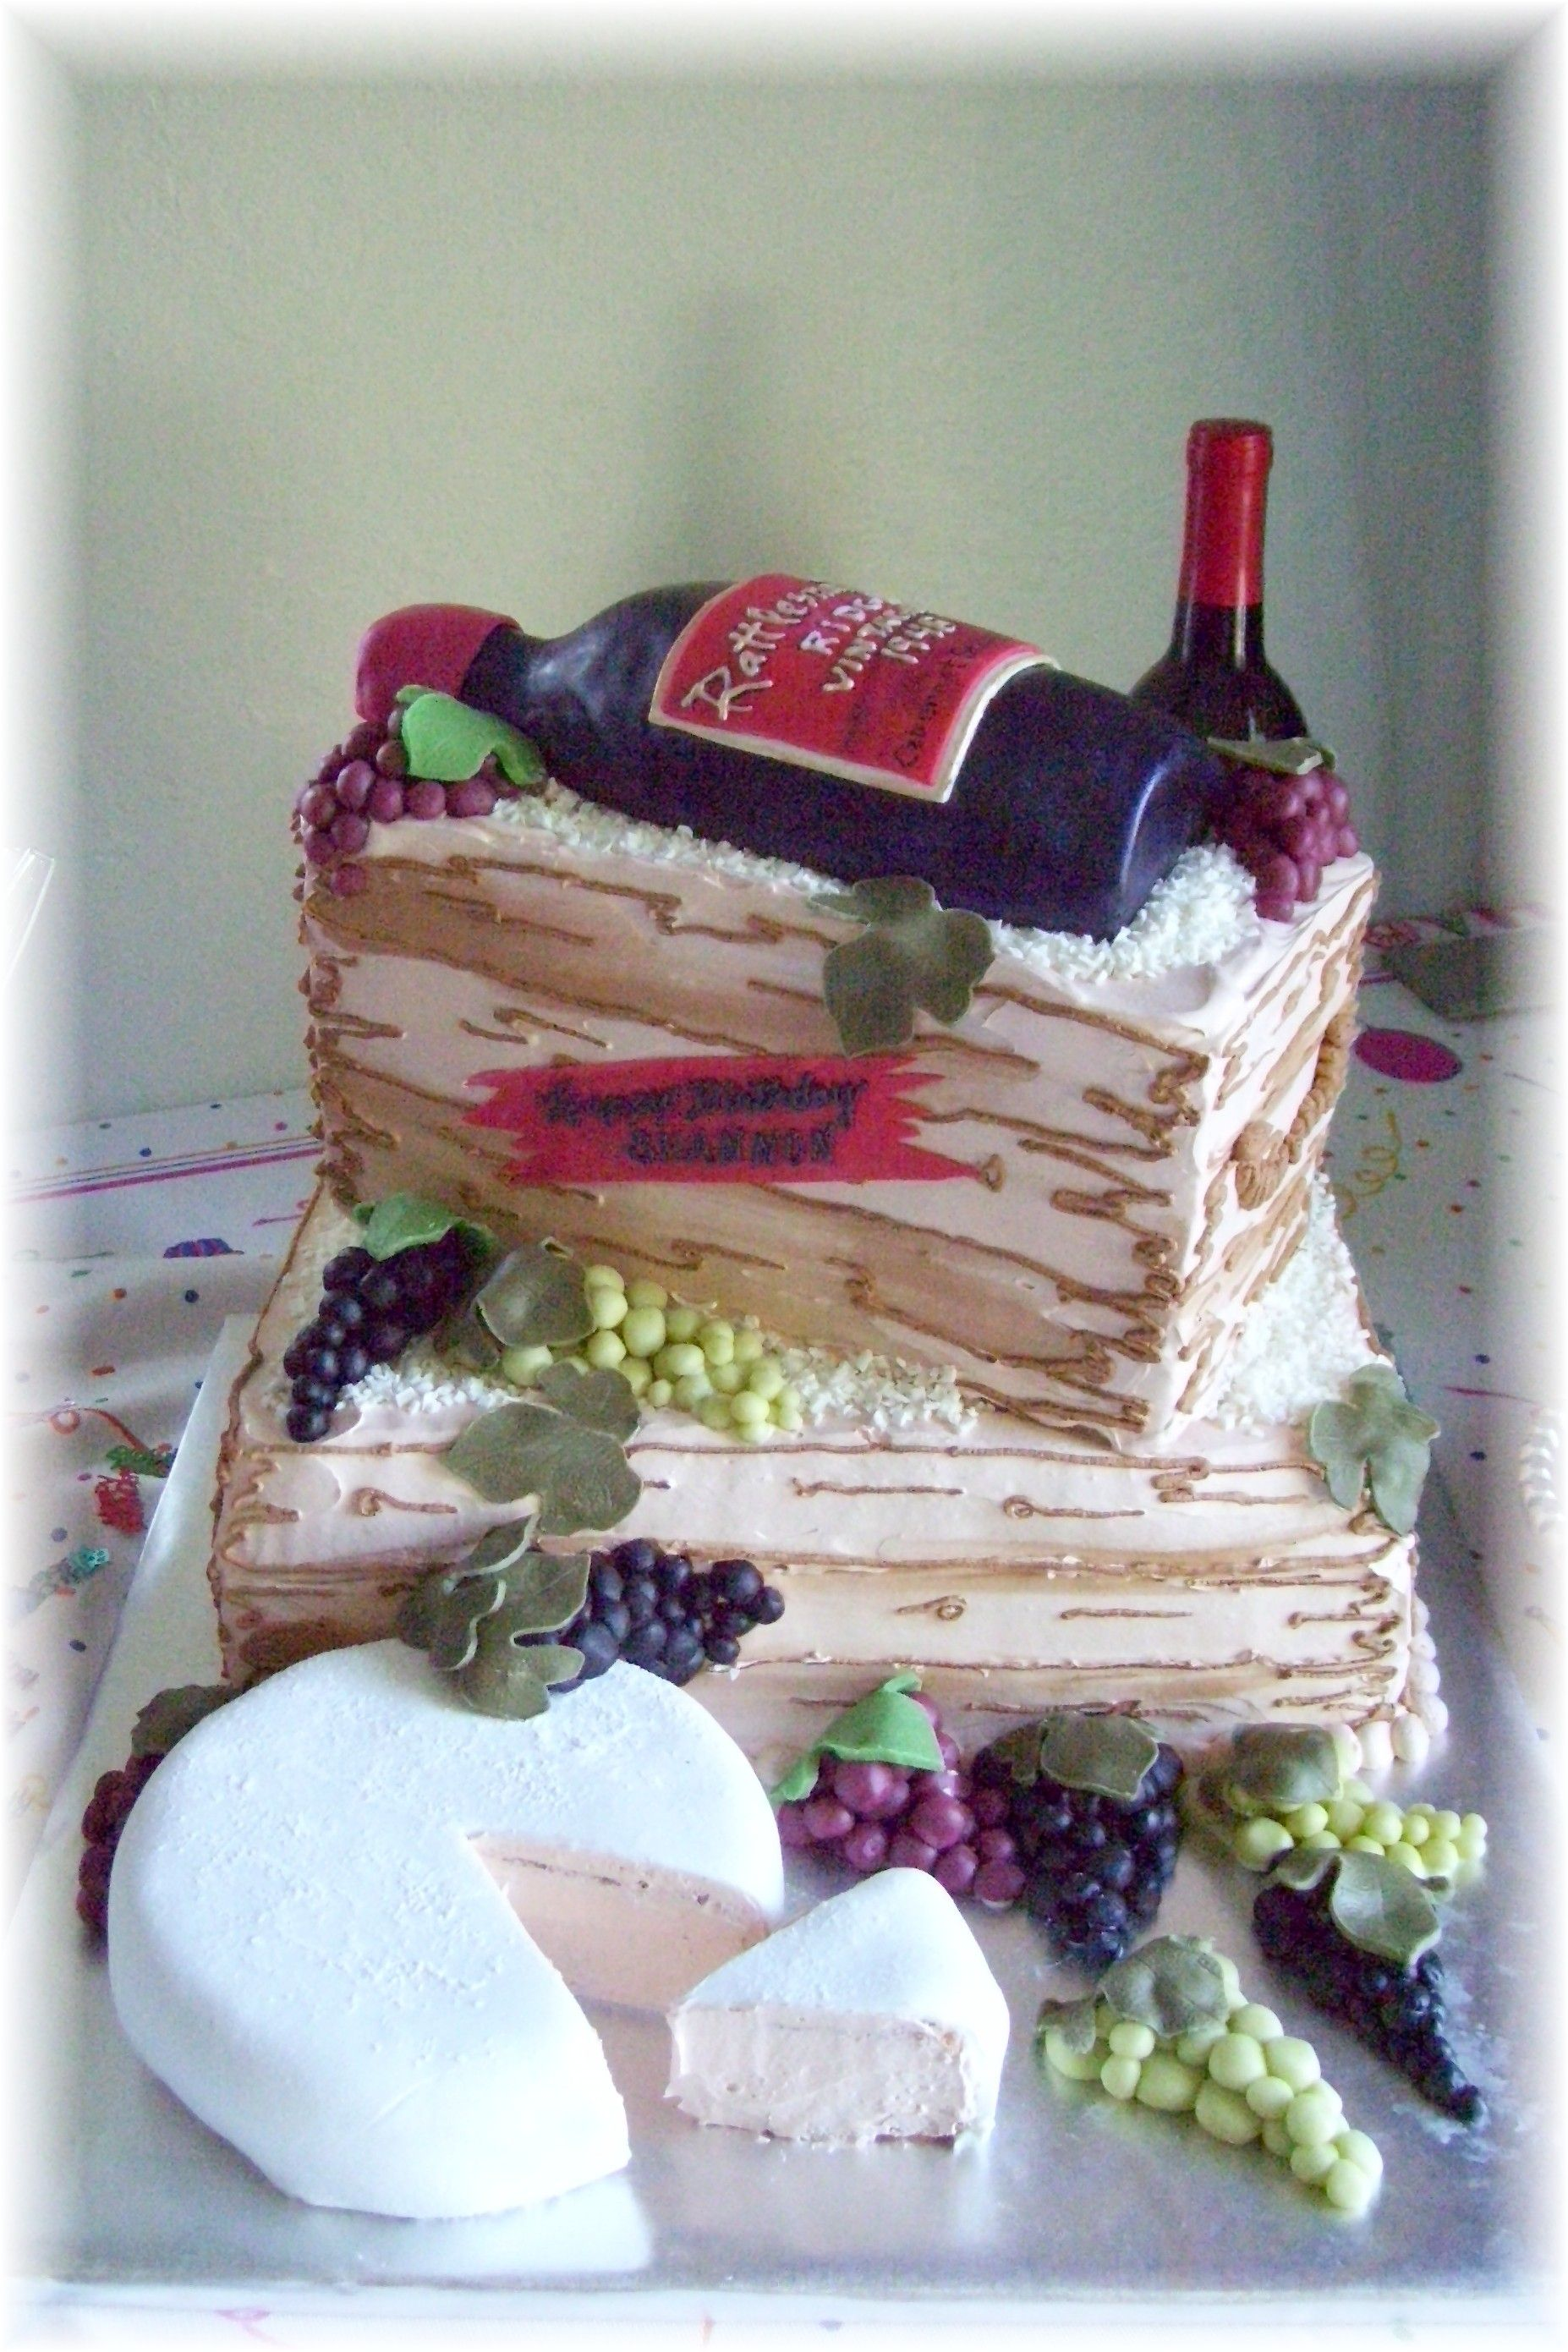 Wine bottle wine crate birthday cake Wine bottle cake made to